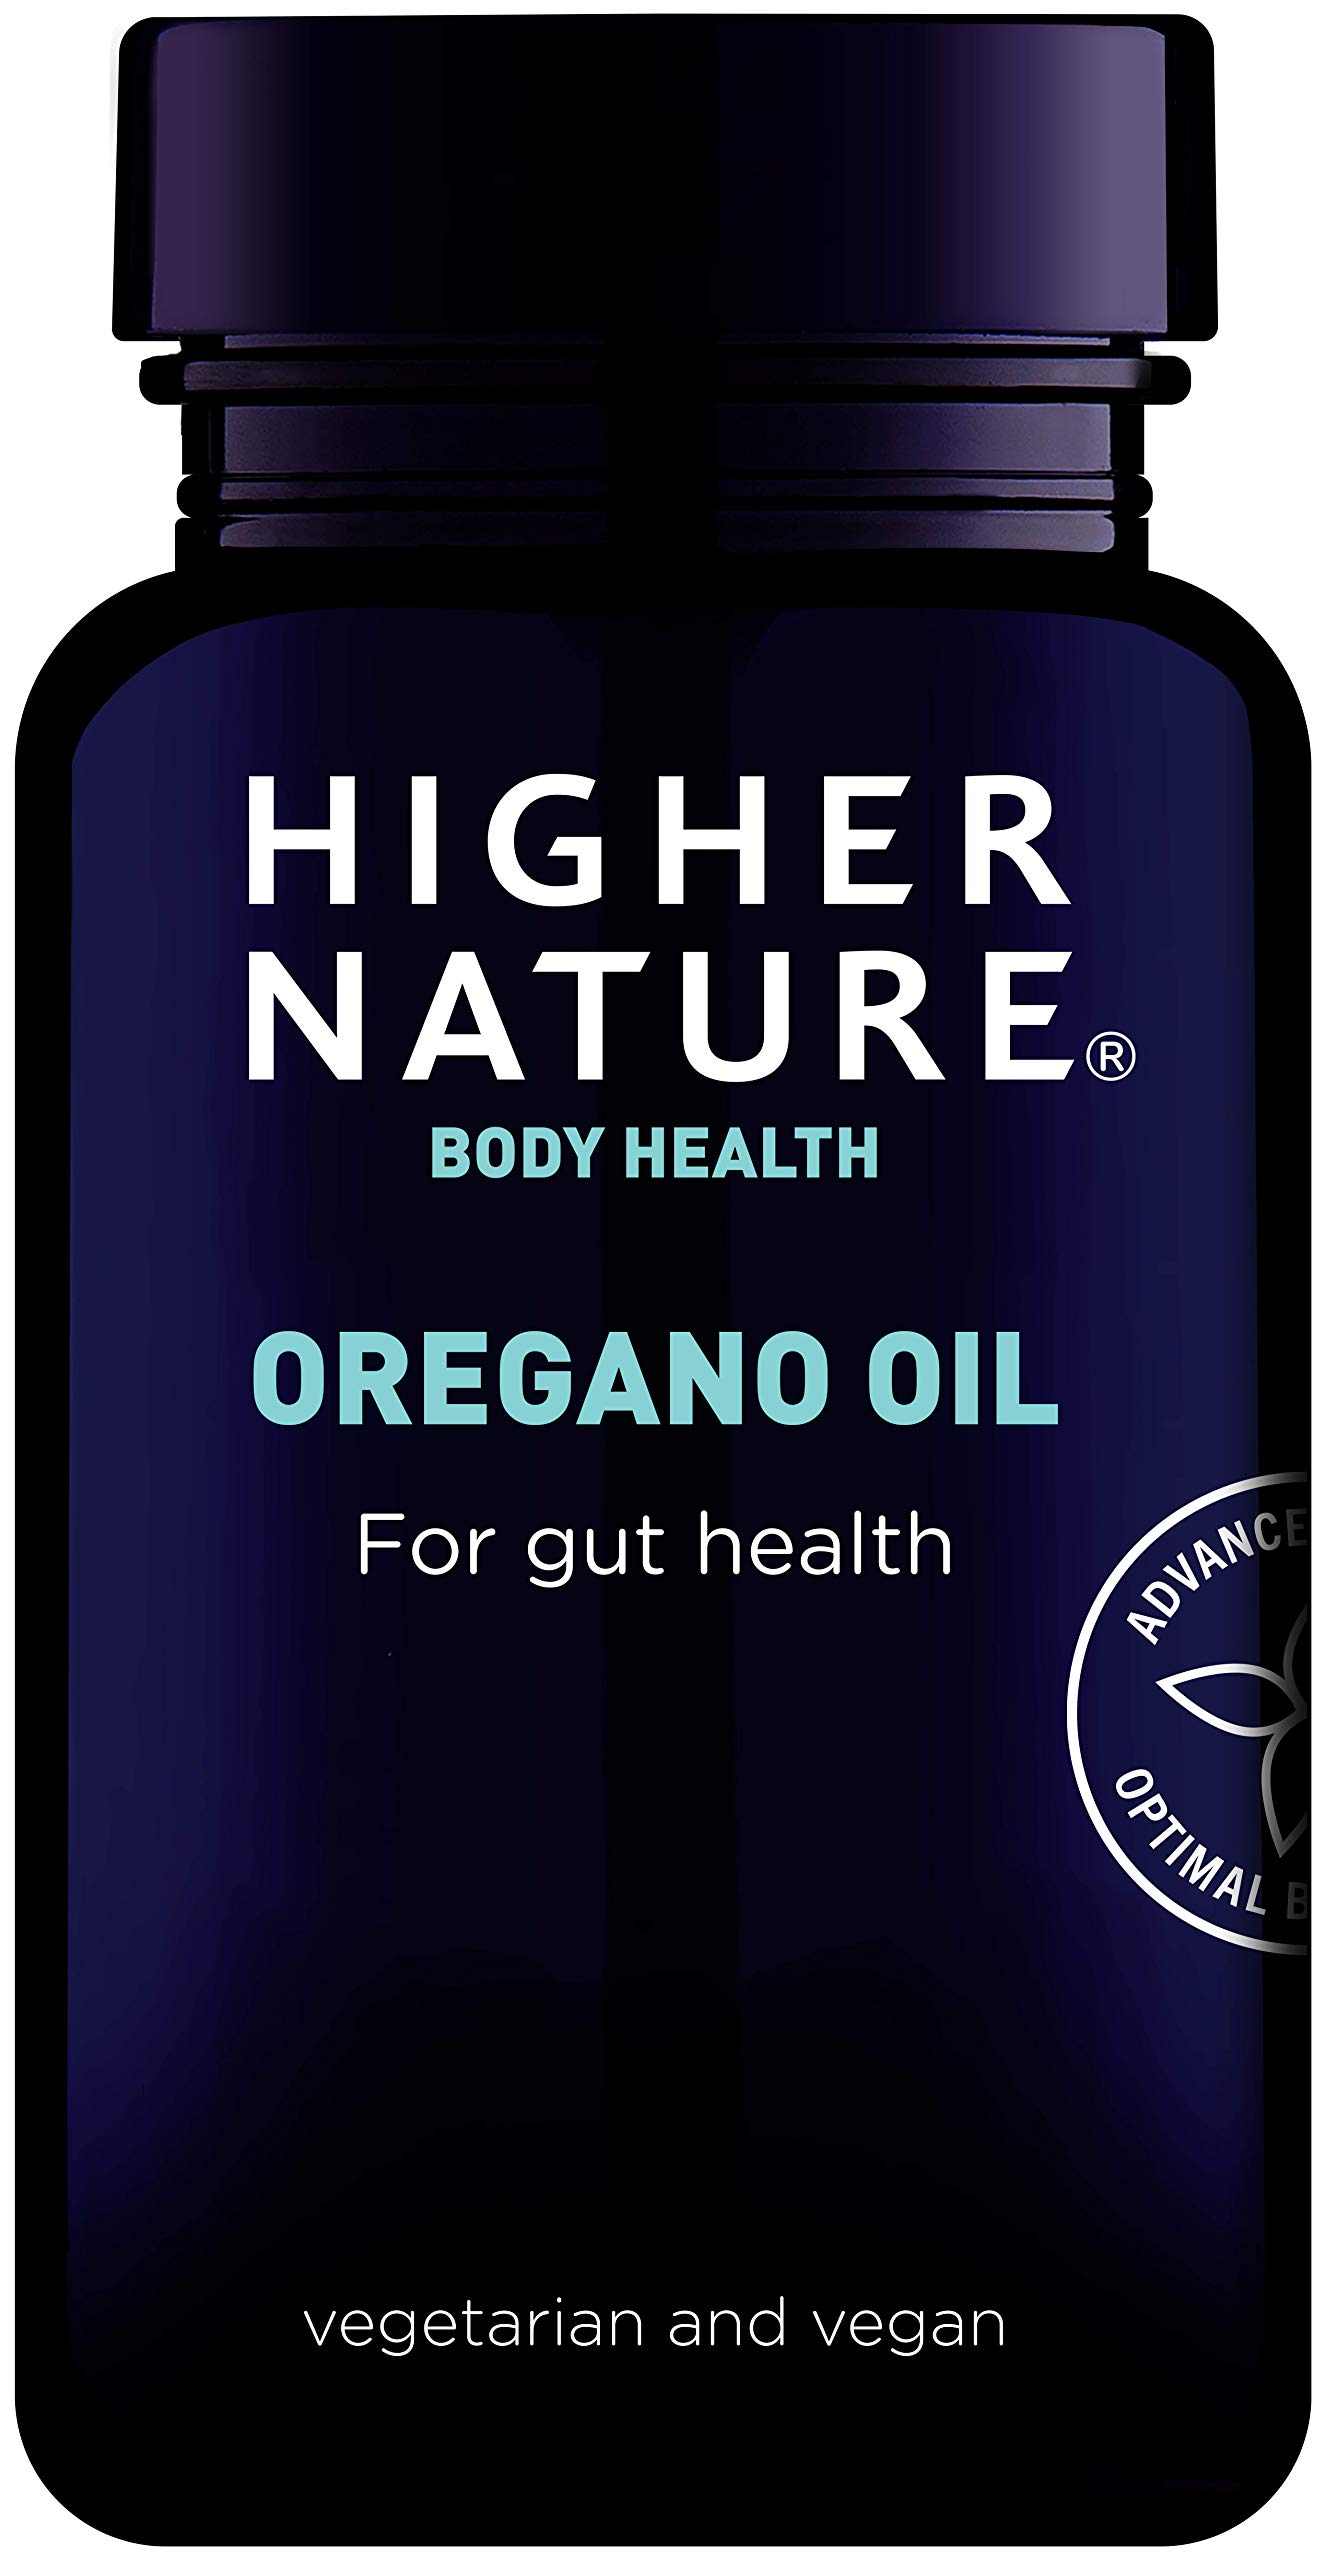 Higher Nature Oregano Oil Capsules Pack of 90 (Packaging May Be Vary)